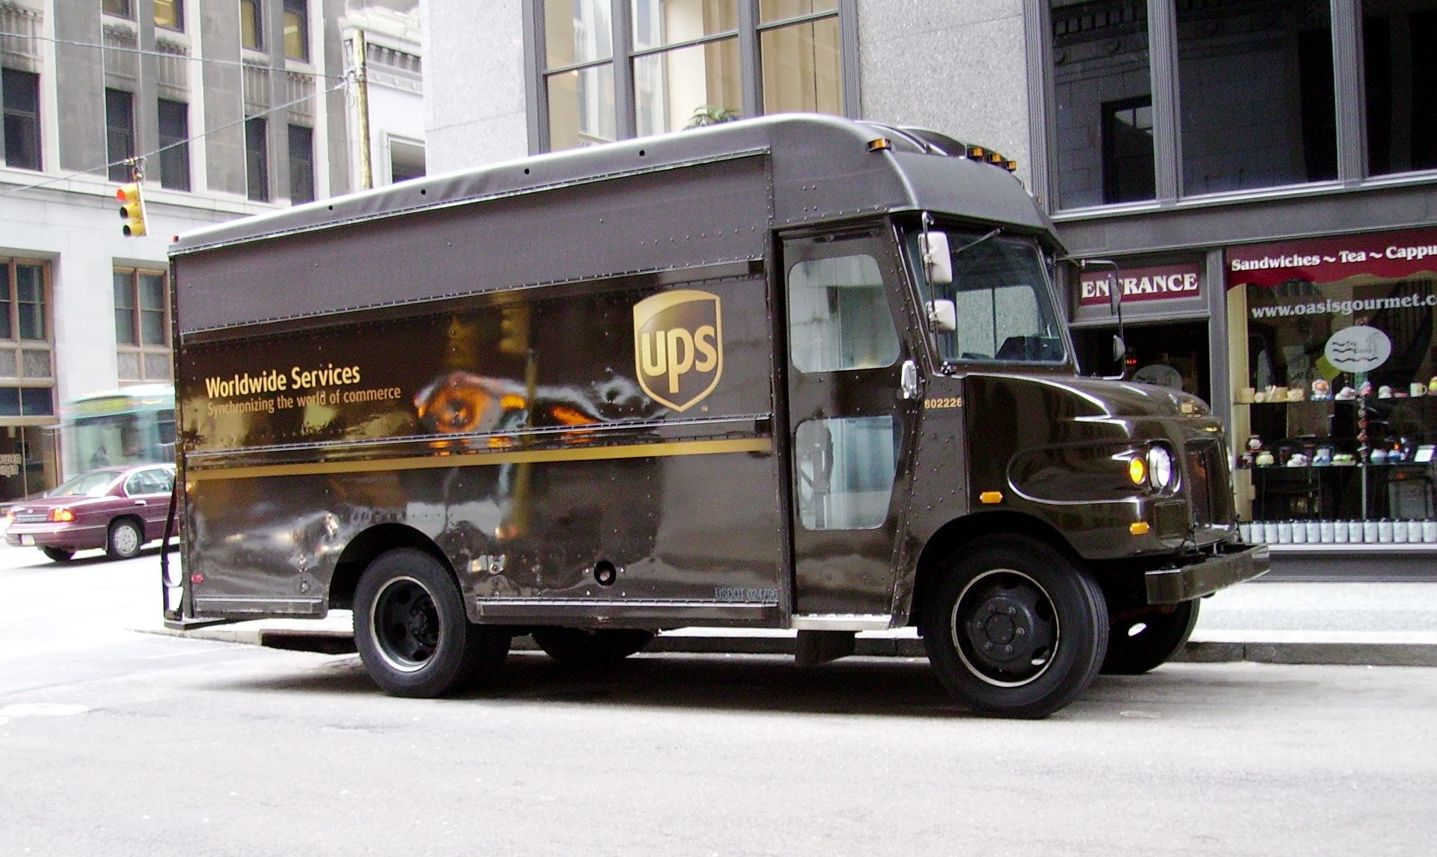 Ups Plans To Drop Insurance Coverage For Employee Spouses